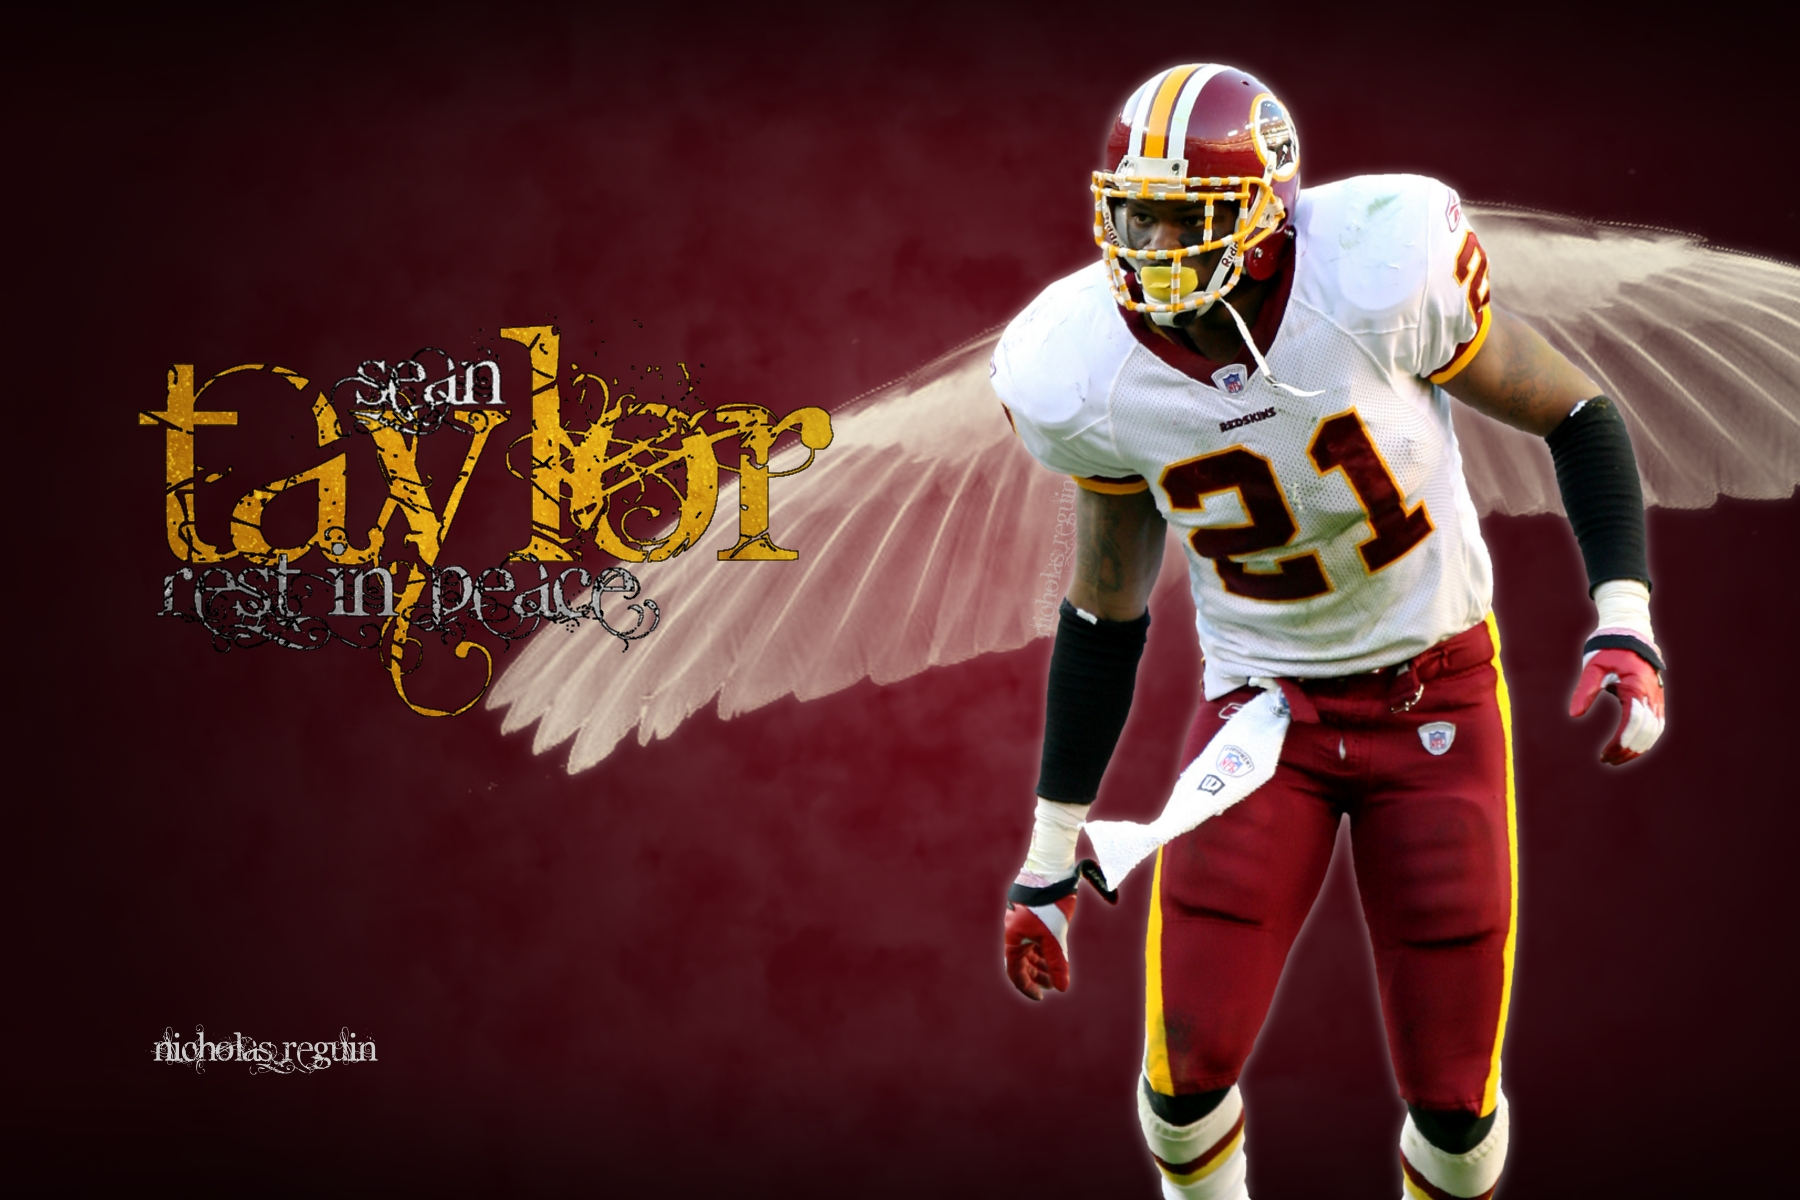 Washington Redskins wallpaper wallpaper ever Washington Redskins 1800x1200